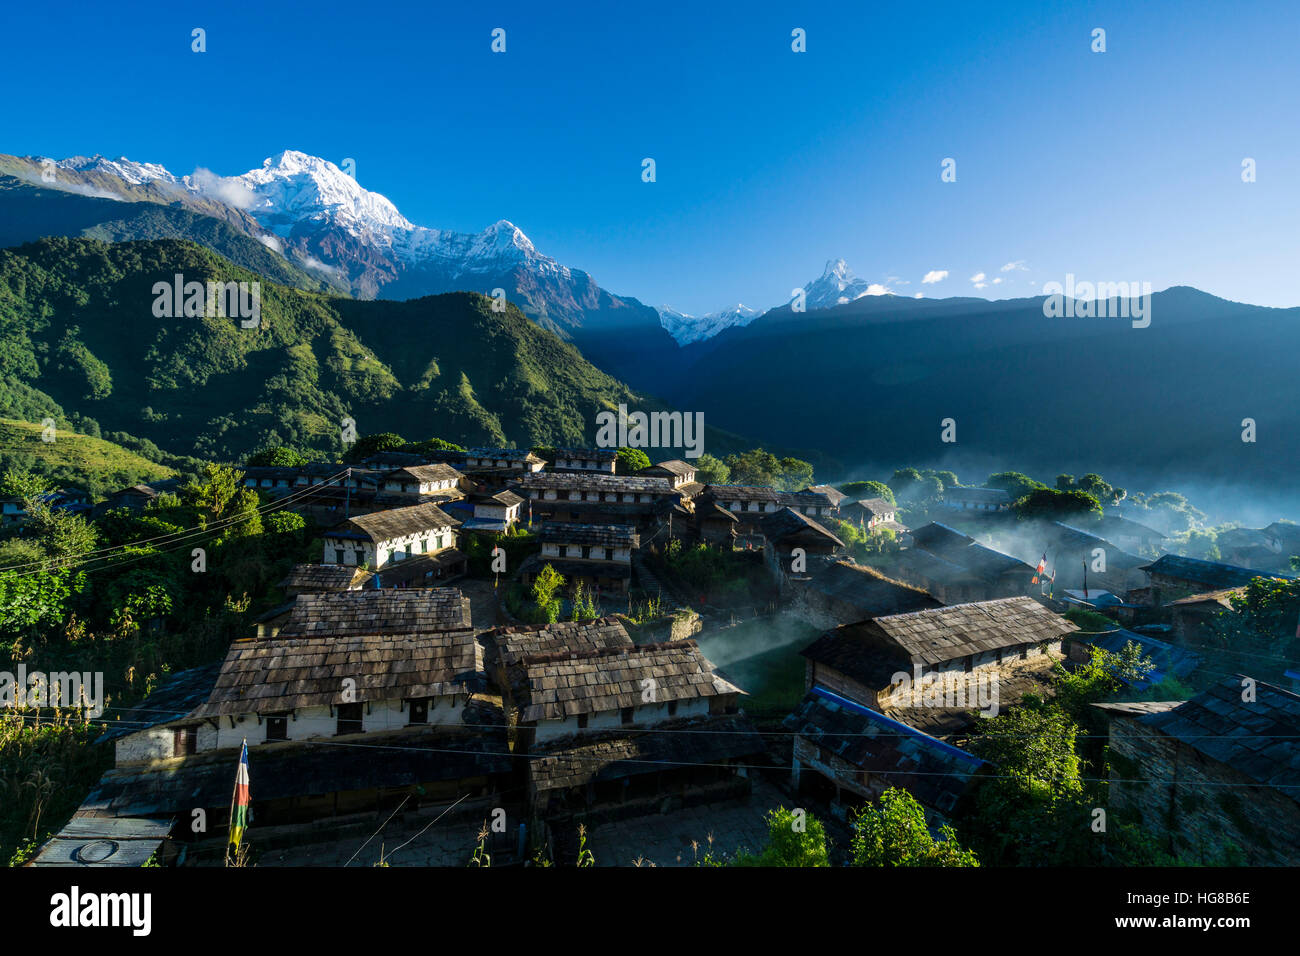 View on the village, back the mountains Annapurna South, left, Himchuli, mid, and Machapuchare, right, Ghandruk, - Stock Image